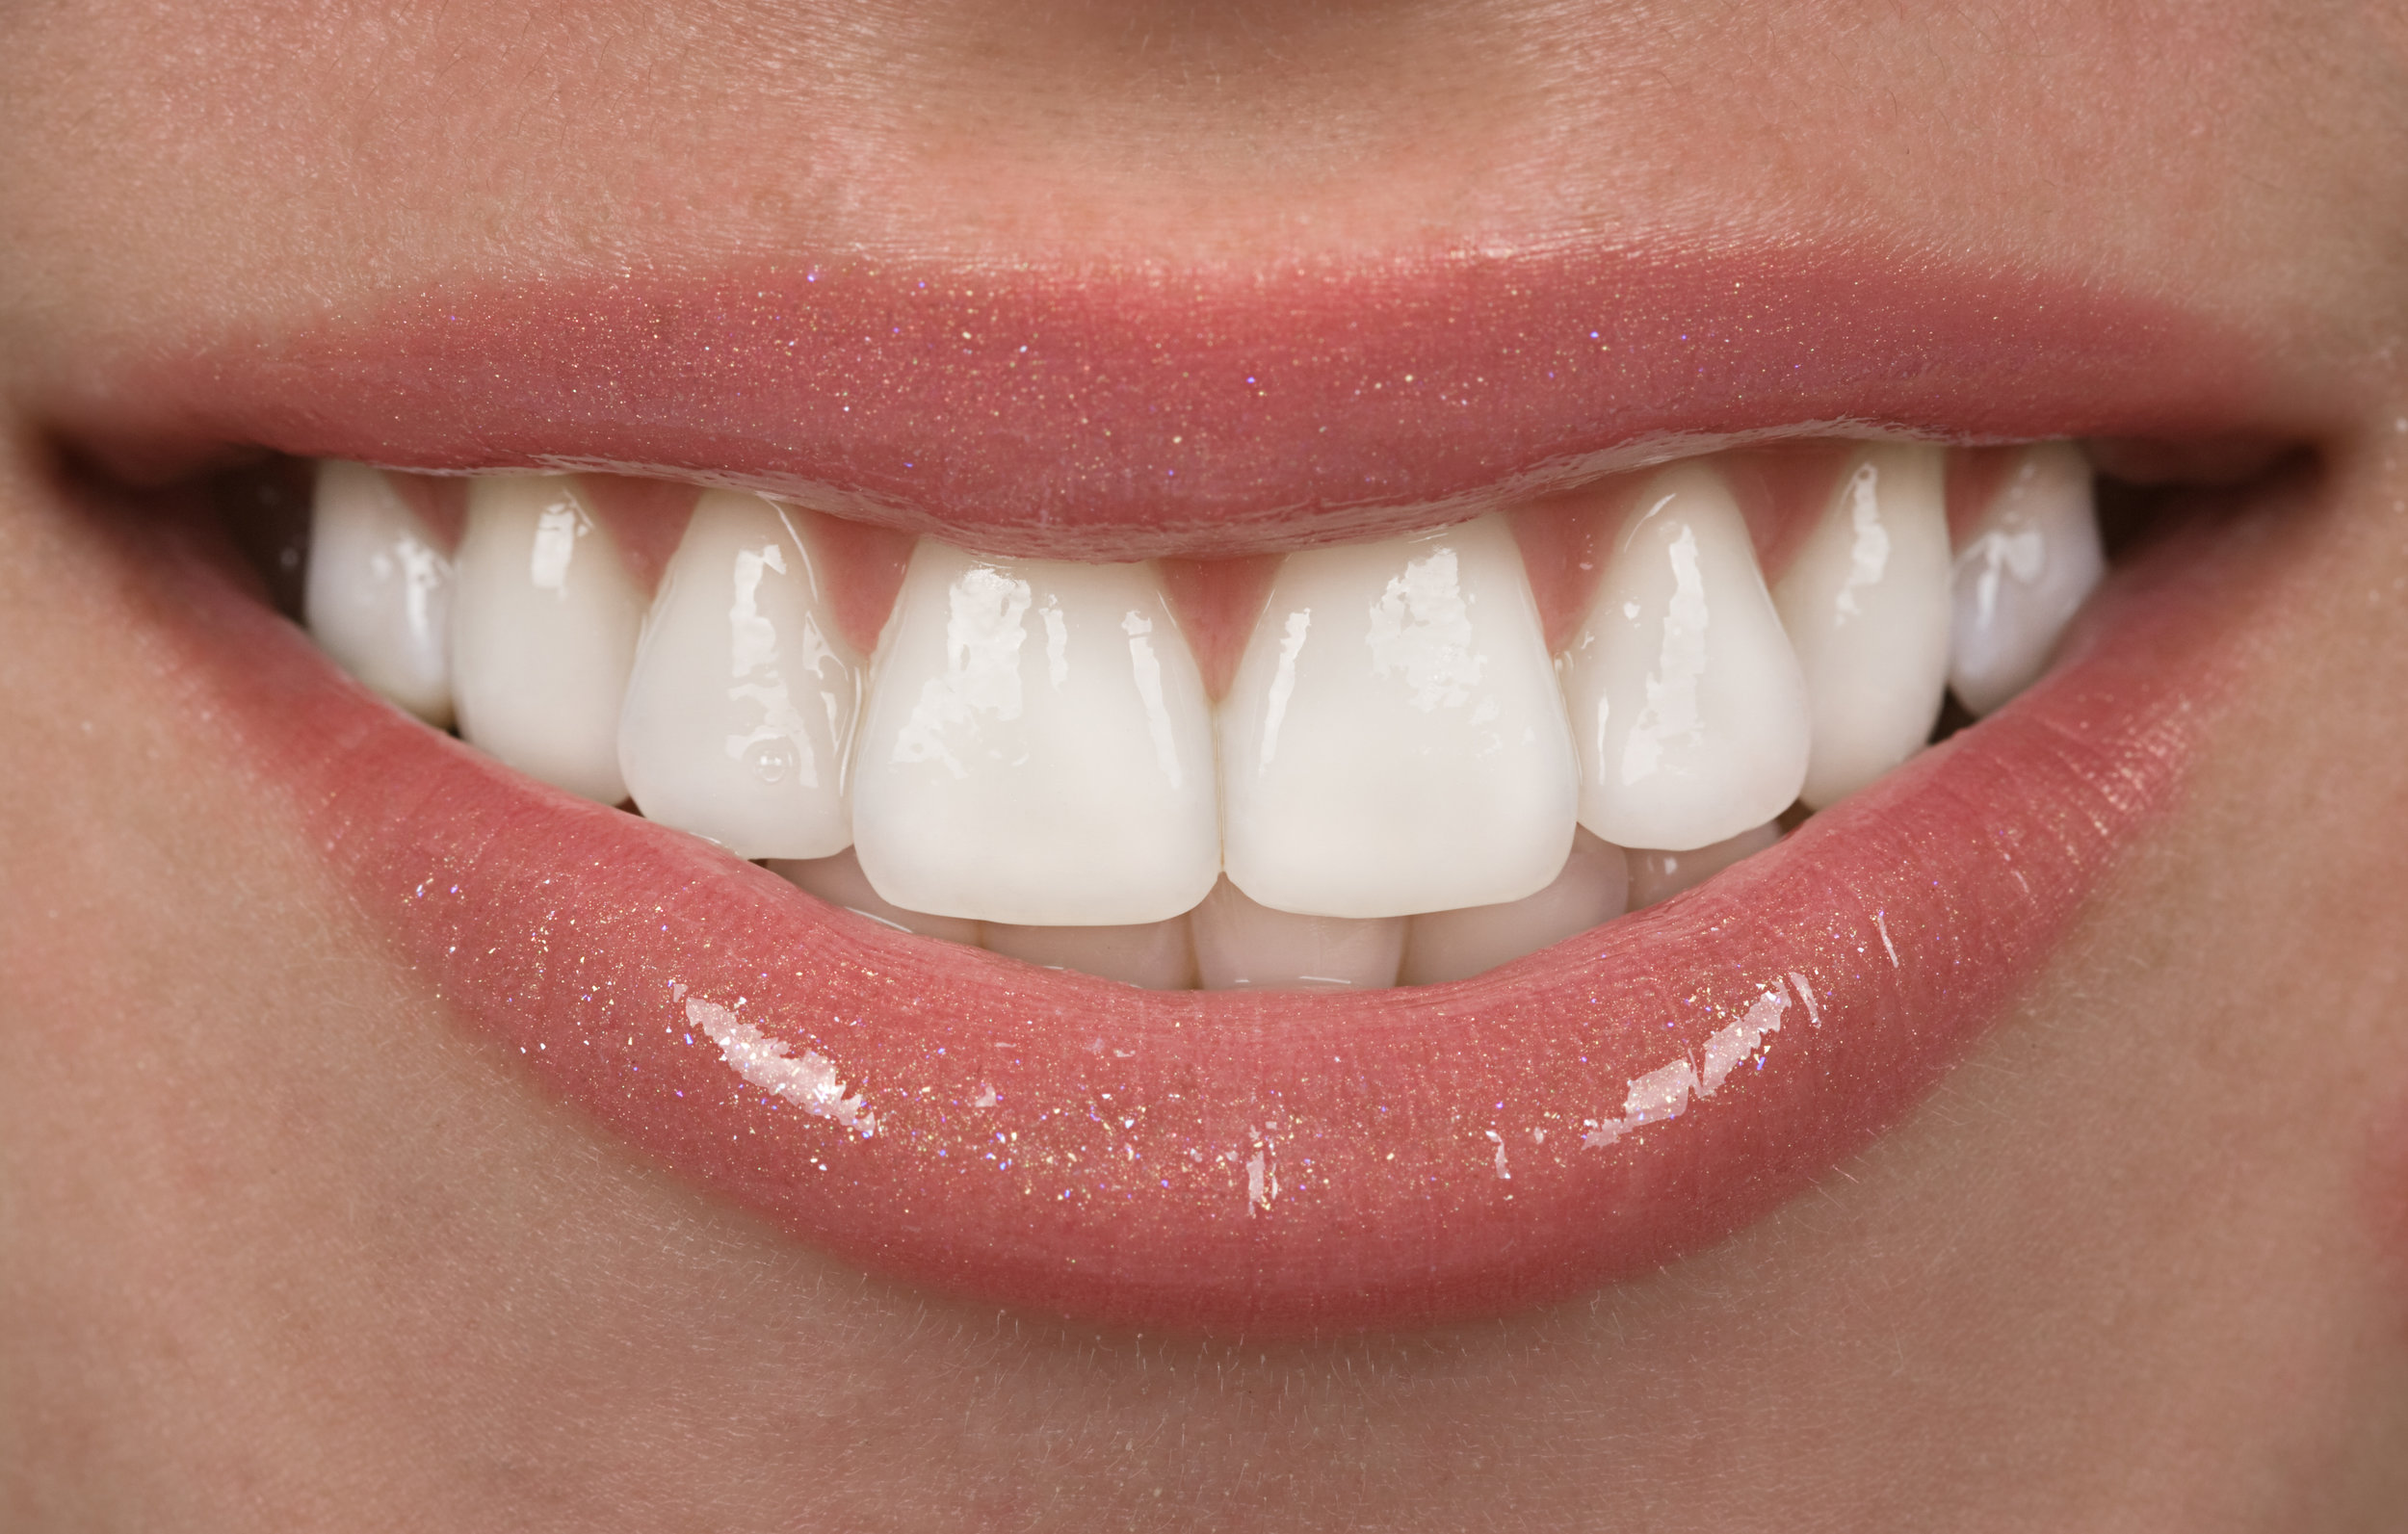 We've all seen those Facebook ads for tooth whitening with charcoal. They catch the eye as they seem slightly bizarre, have hundreds of 'likes' and 'comments' and seem a little too good to be true. So what's the deal with whitening teeth with charcoal? Is there any basis to the claims and what's with all the hype?